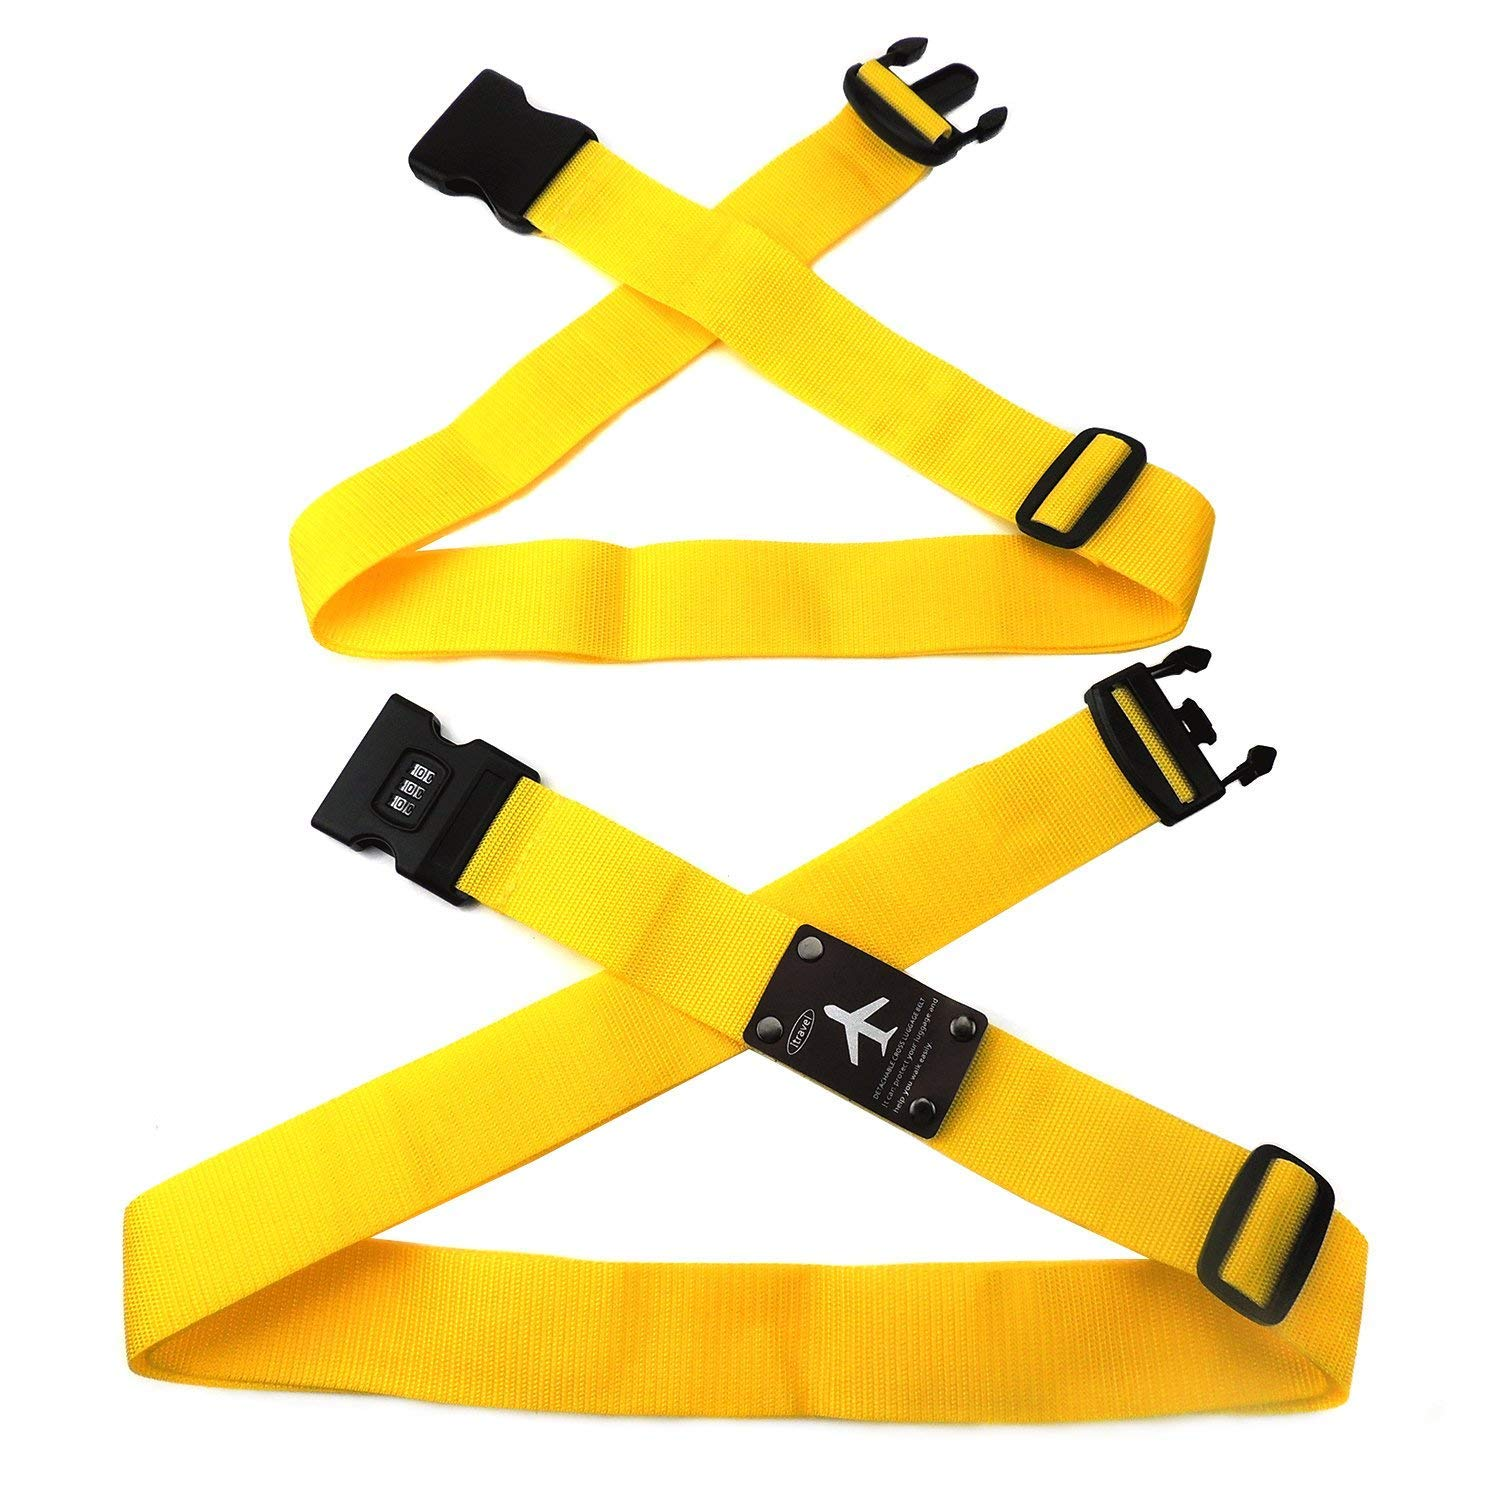 CHMETE Travel Suitcase Belts/Luggage Straps, 2pcs-yellow by CHMETE (Image #5)